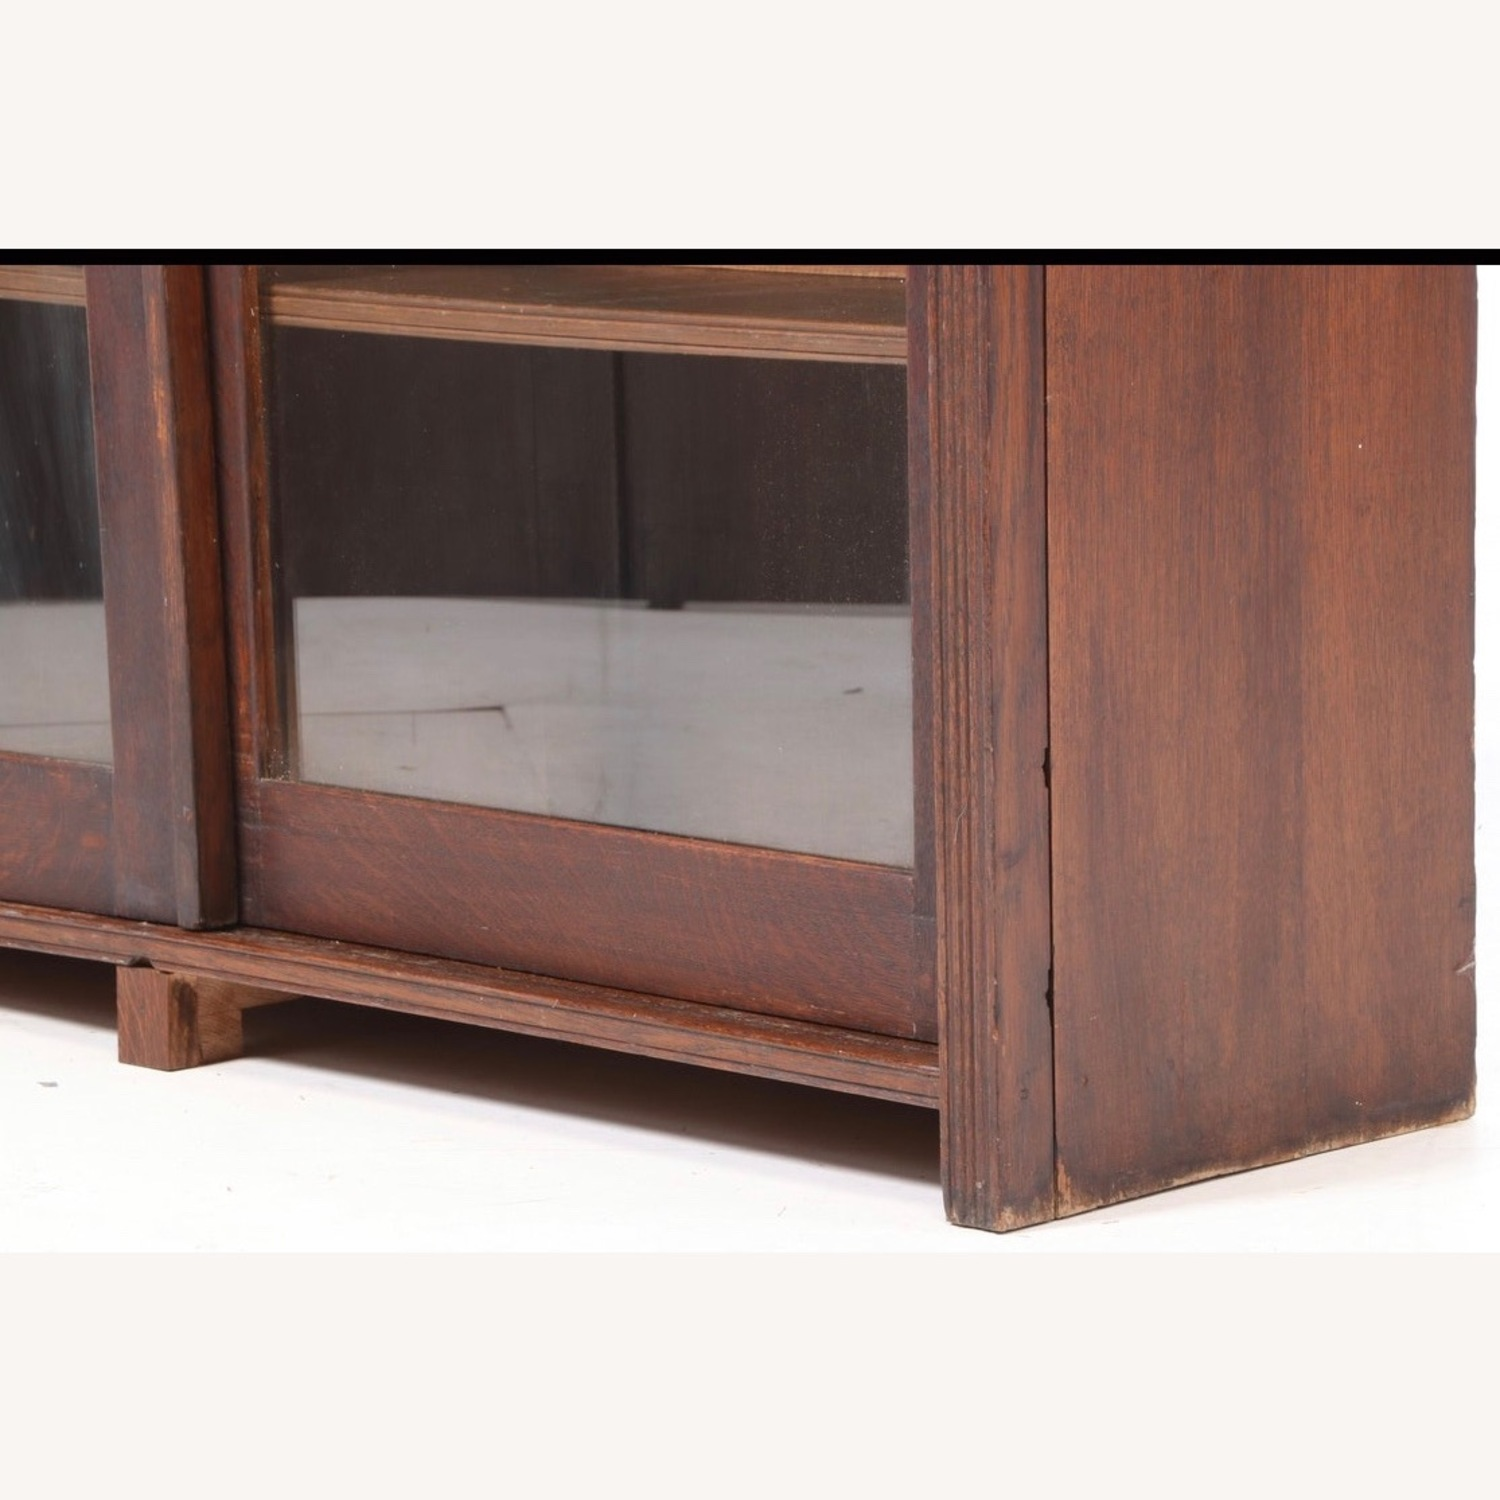 Oak Bookcase Cabinet, Early 20th Century - image-6